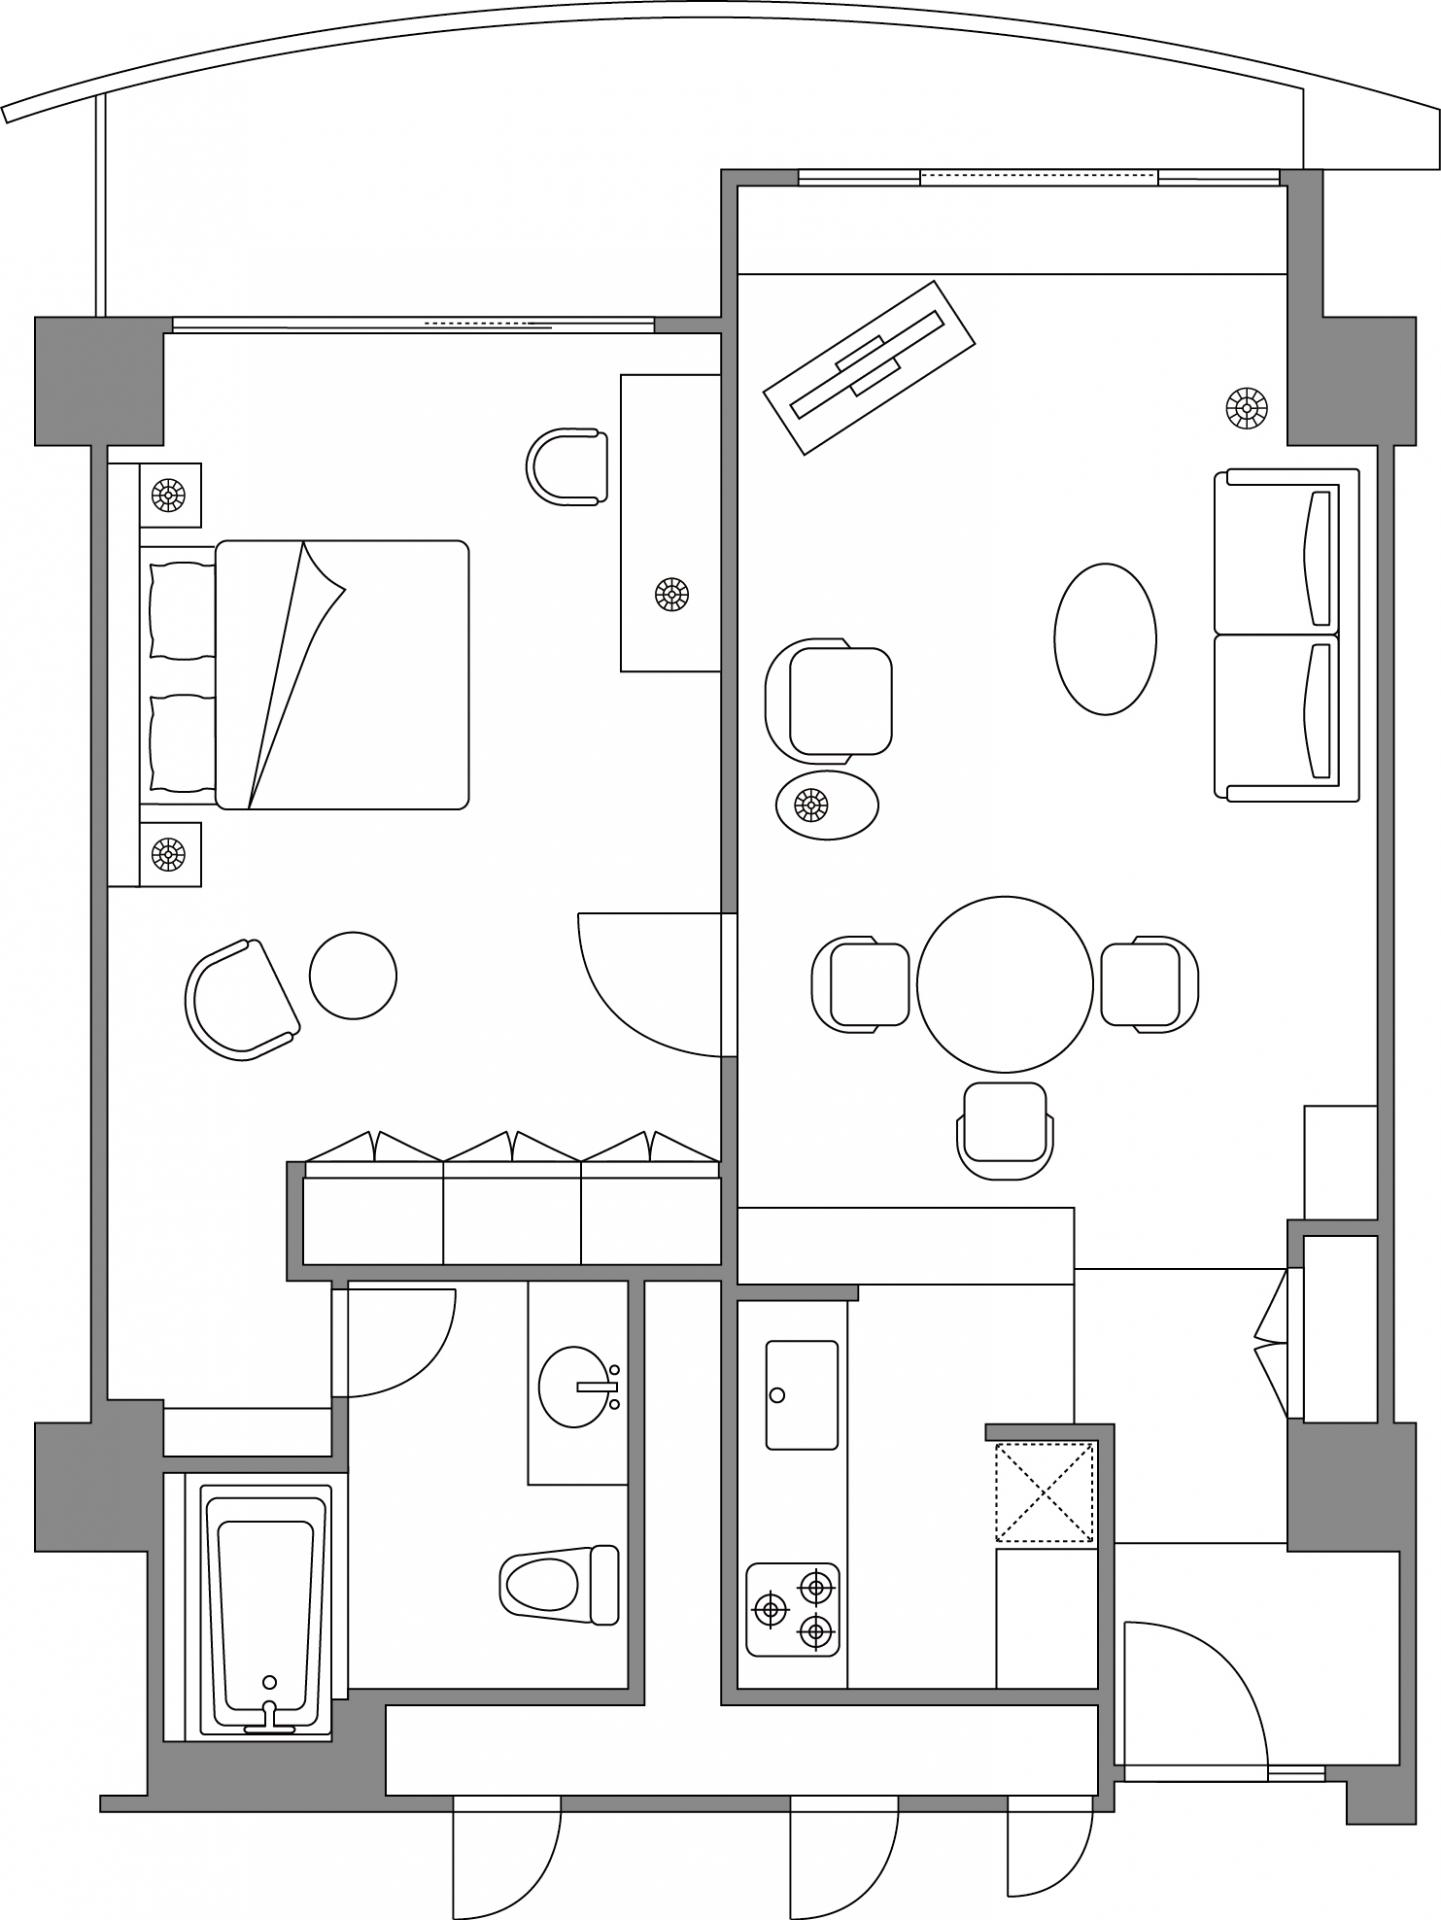 1 bedroom executive apartment floor plan at Somerset Shinagawa Apartments